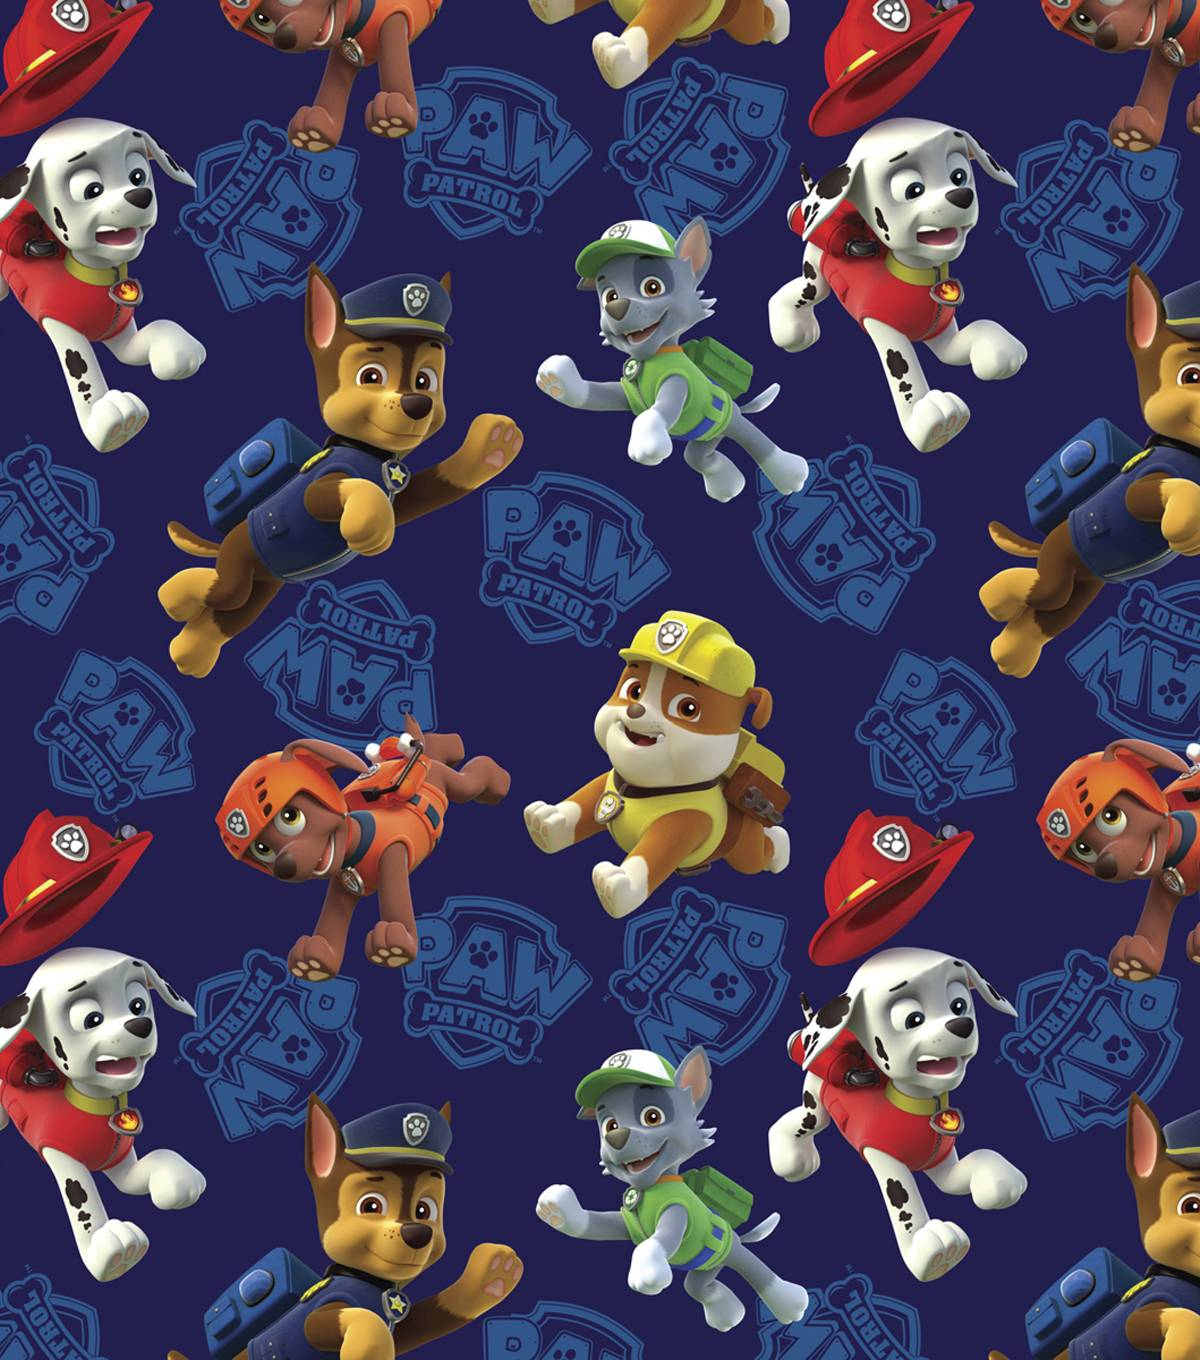 Paw Patrol iPhone Wallpapers - Wallpaper Cave